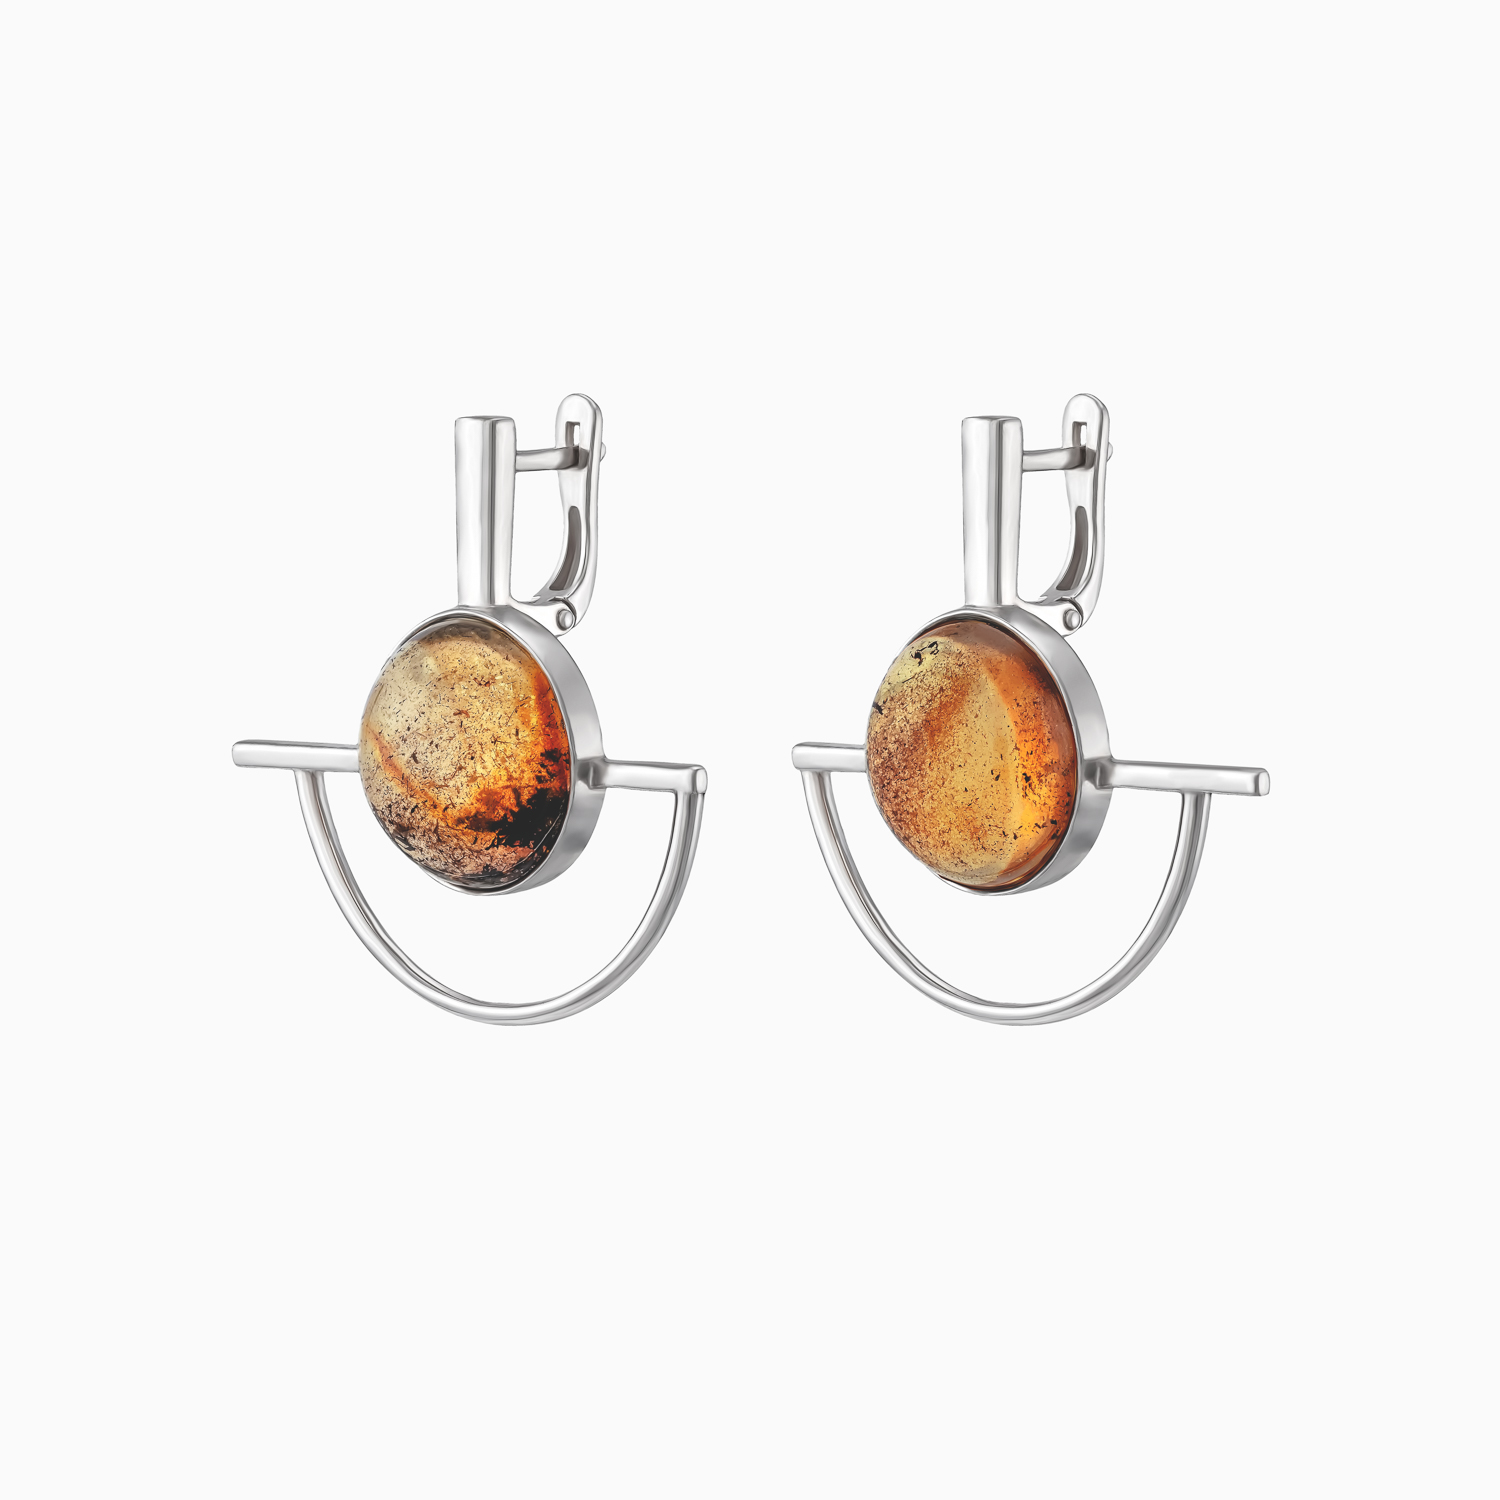 Silver Earrings with Inclusions Inside Amber